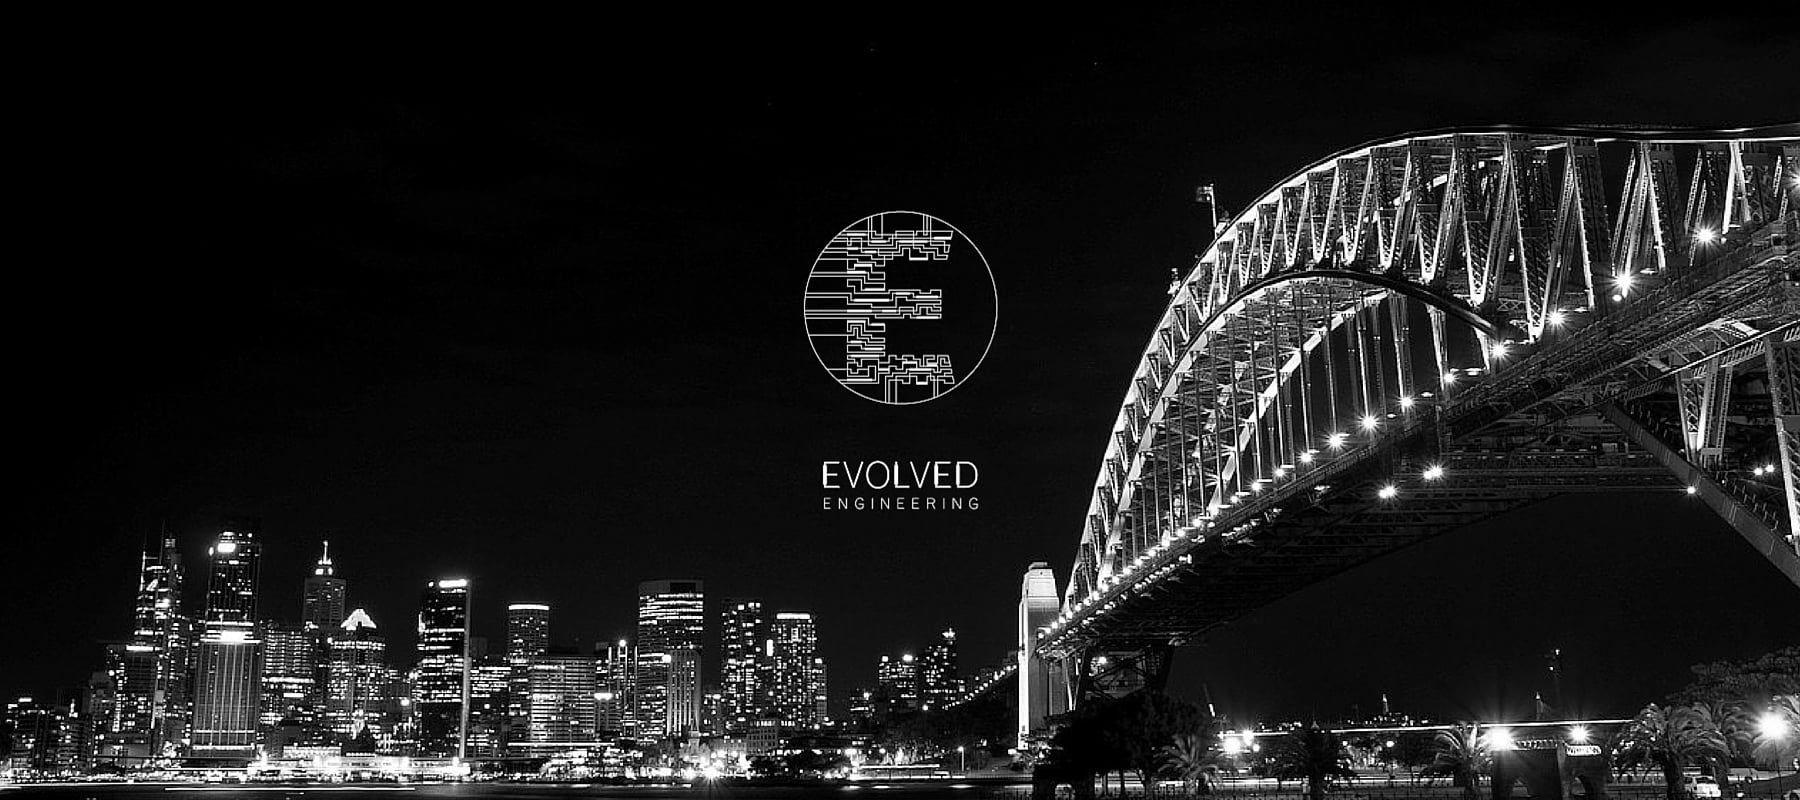 Evolved Engineering Sydney NSW.jpg